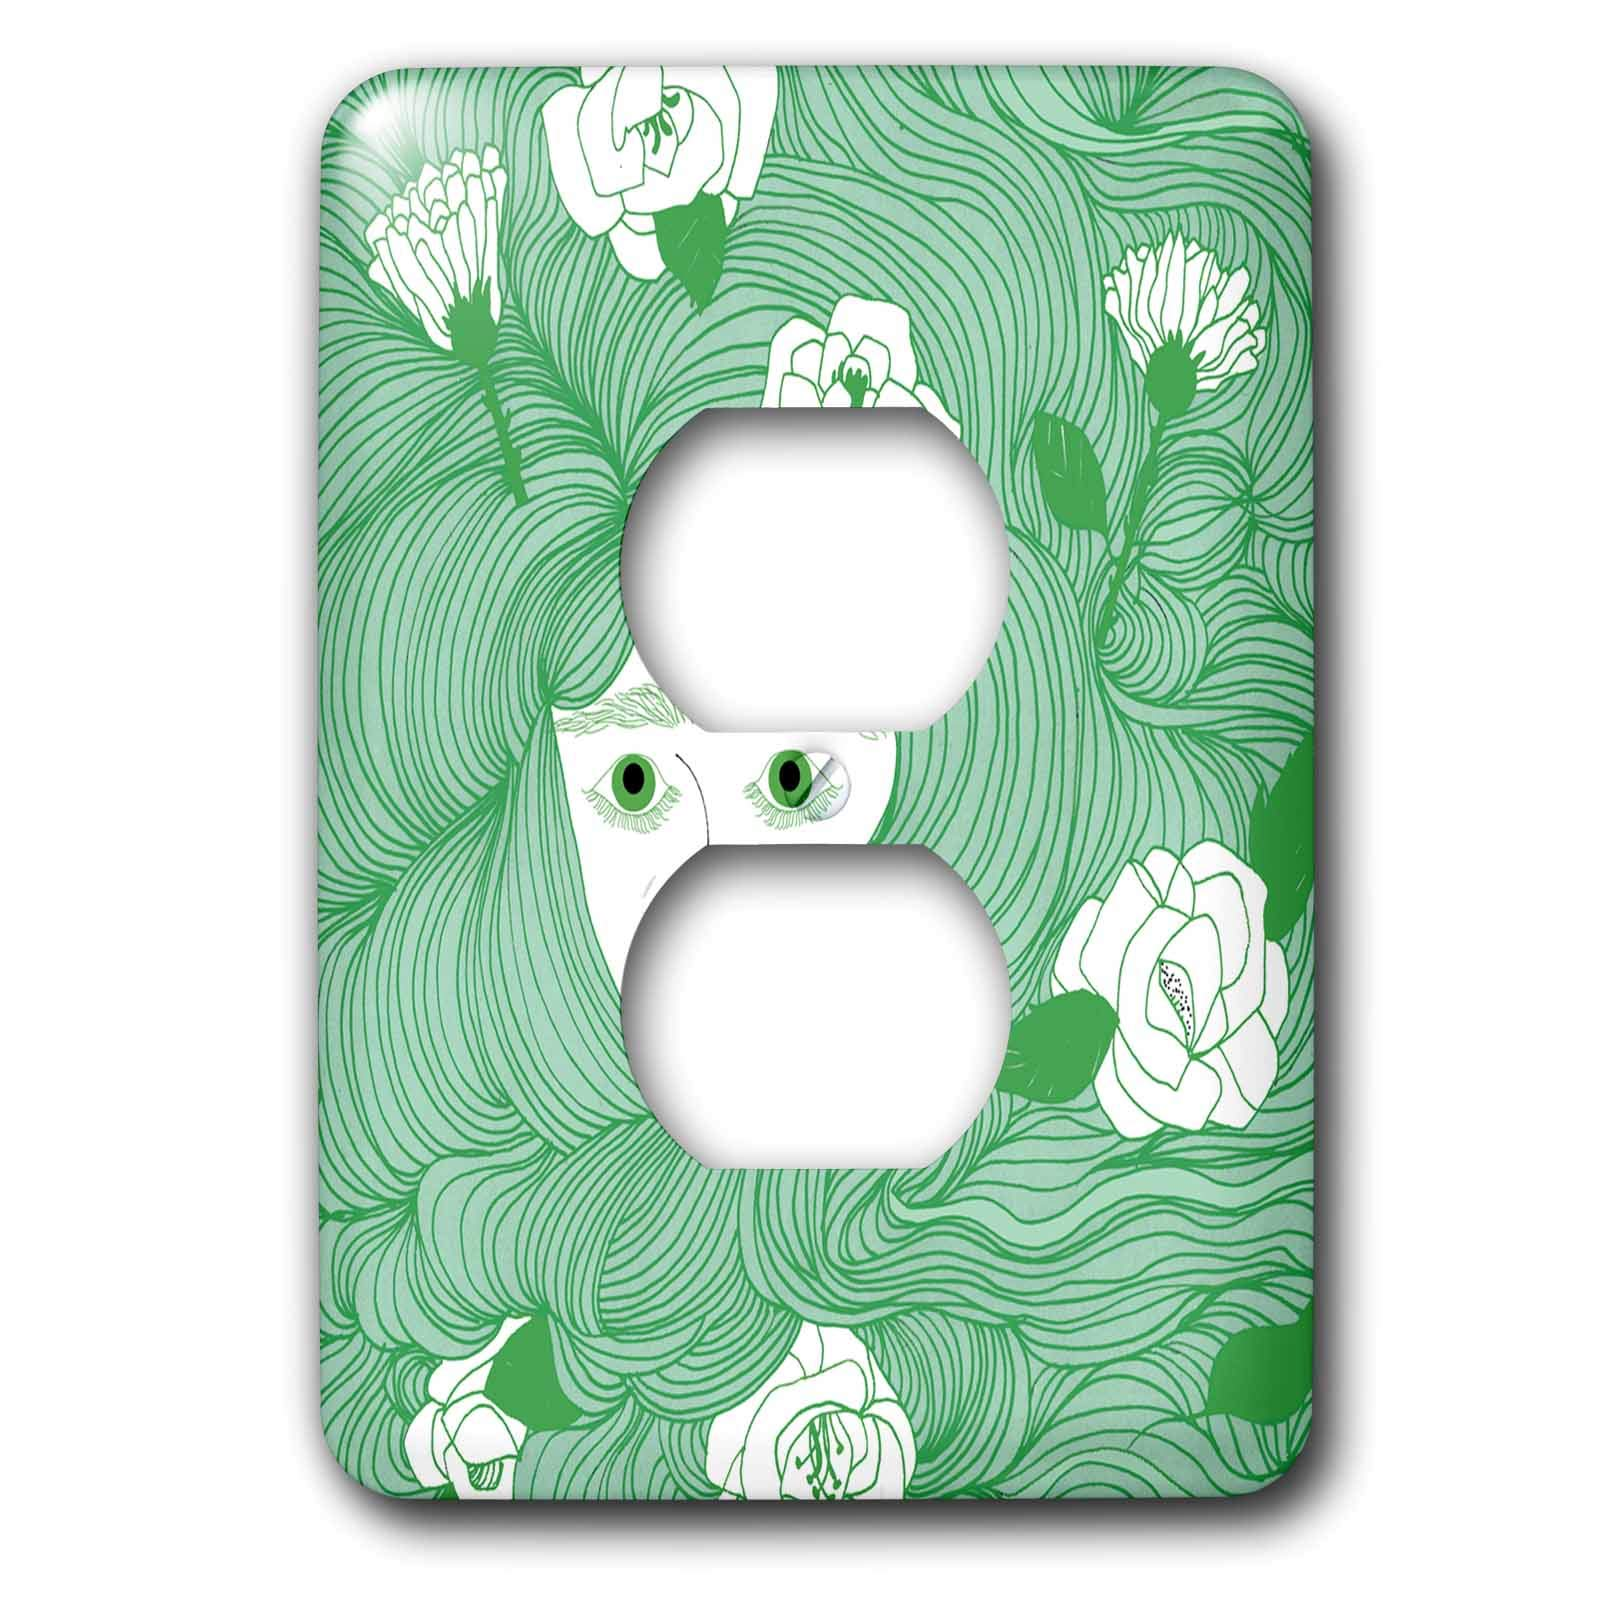 3dRose Daniela Spoto- People - Woman With Long Green Hair And White Flowers - Light Switch Covers - 2 plug outlet cover (lsp_289553_6) by 3dRose